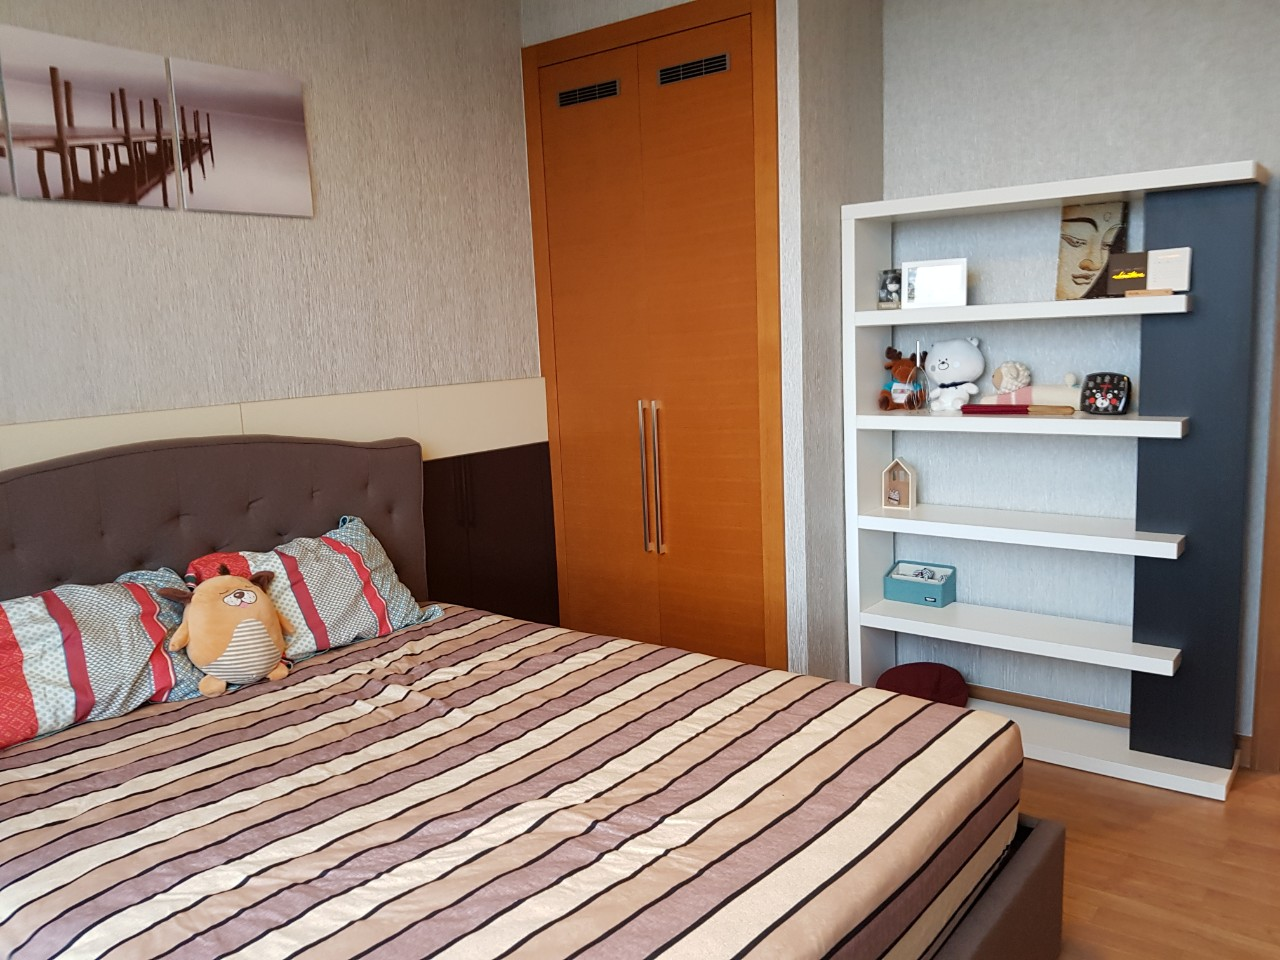 Xi Apartment Nice Furniture Good View in Thao Dien D206096 (4)